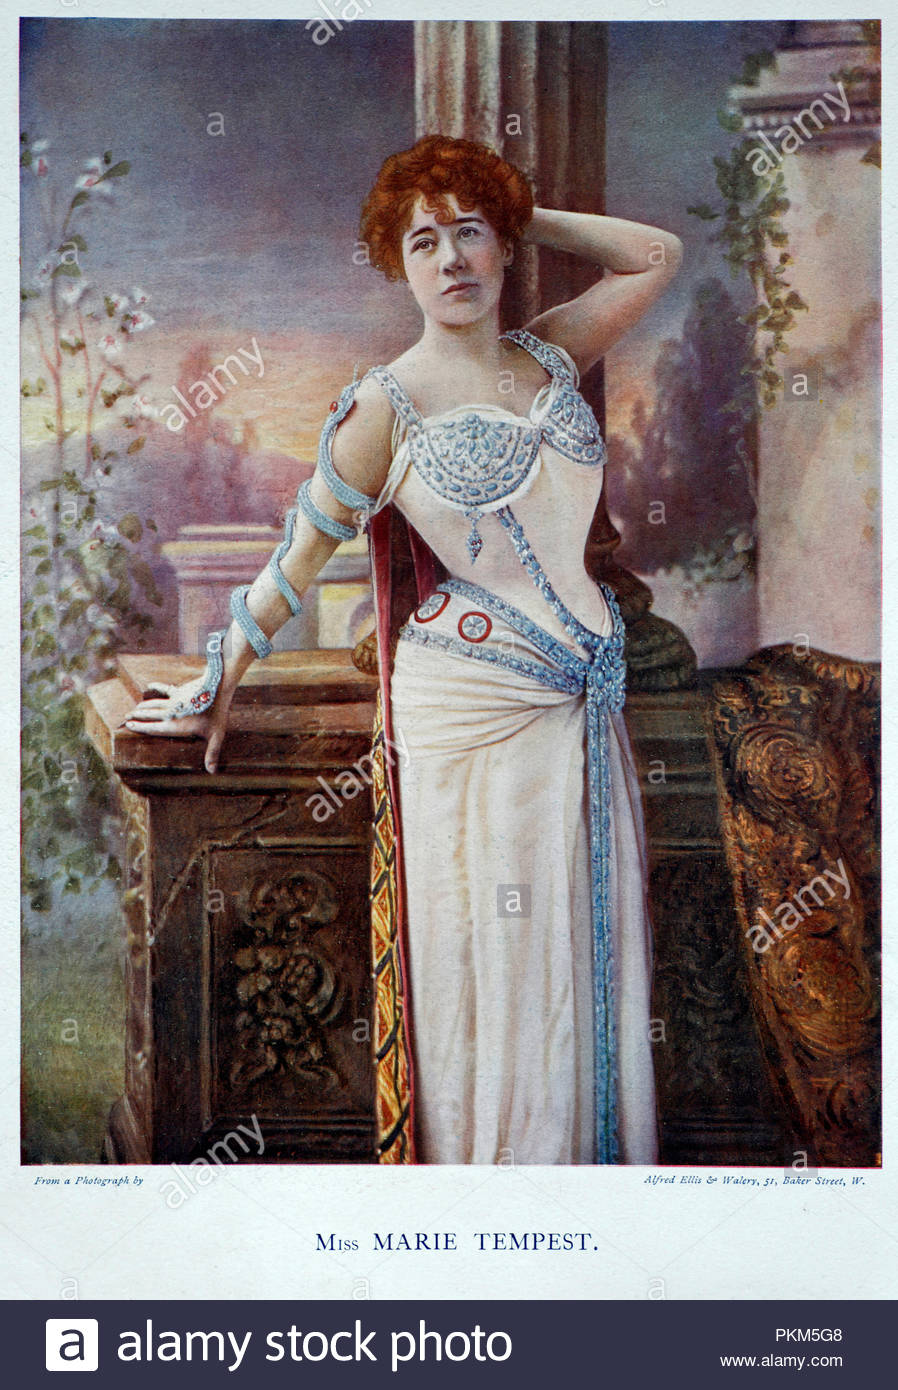 Marie Tempest portrait, 1864 – 1942, was an English singer and actress, colour illustration from 1899 - Stock Image